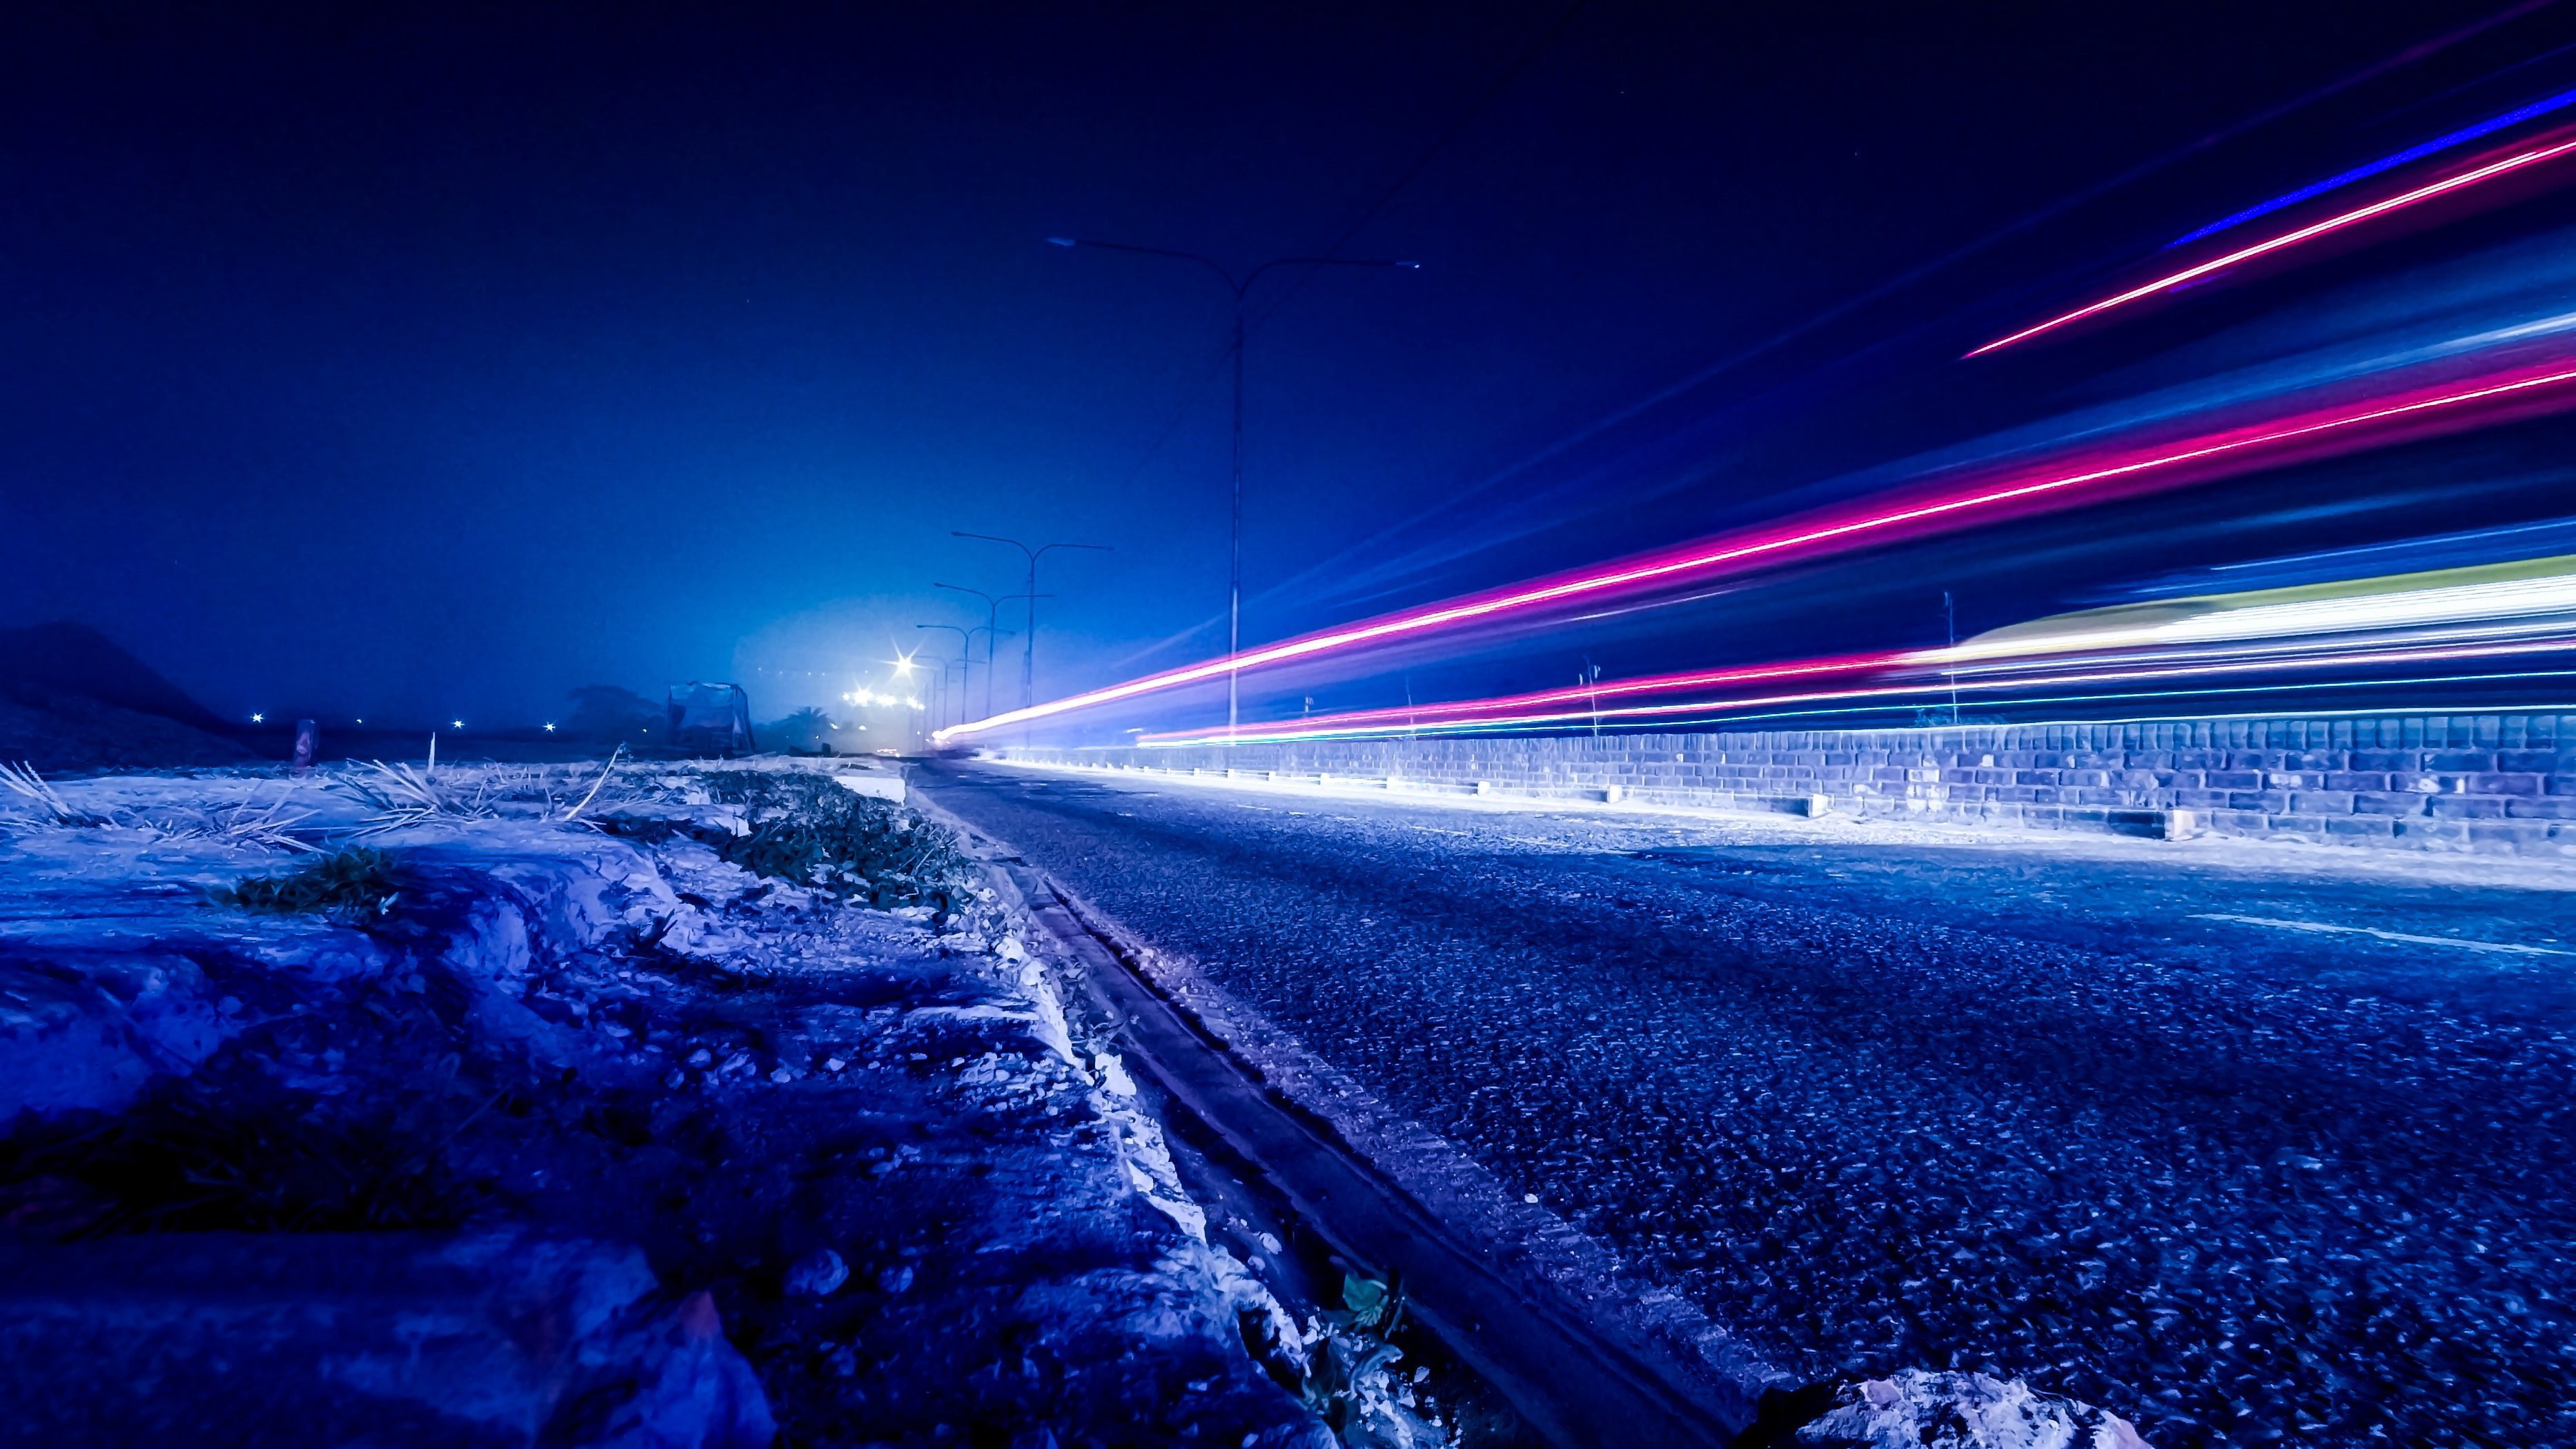 time lapse photography of vehicle light during nighttime